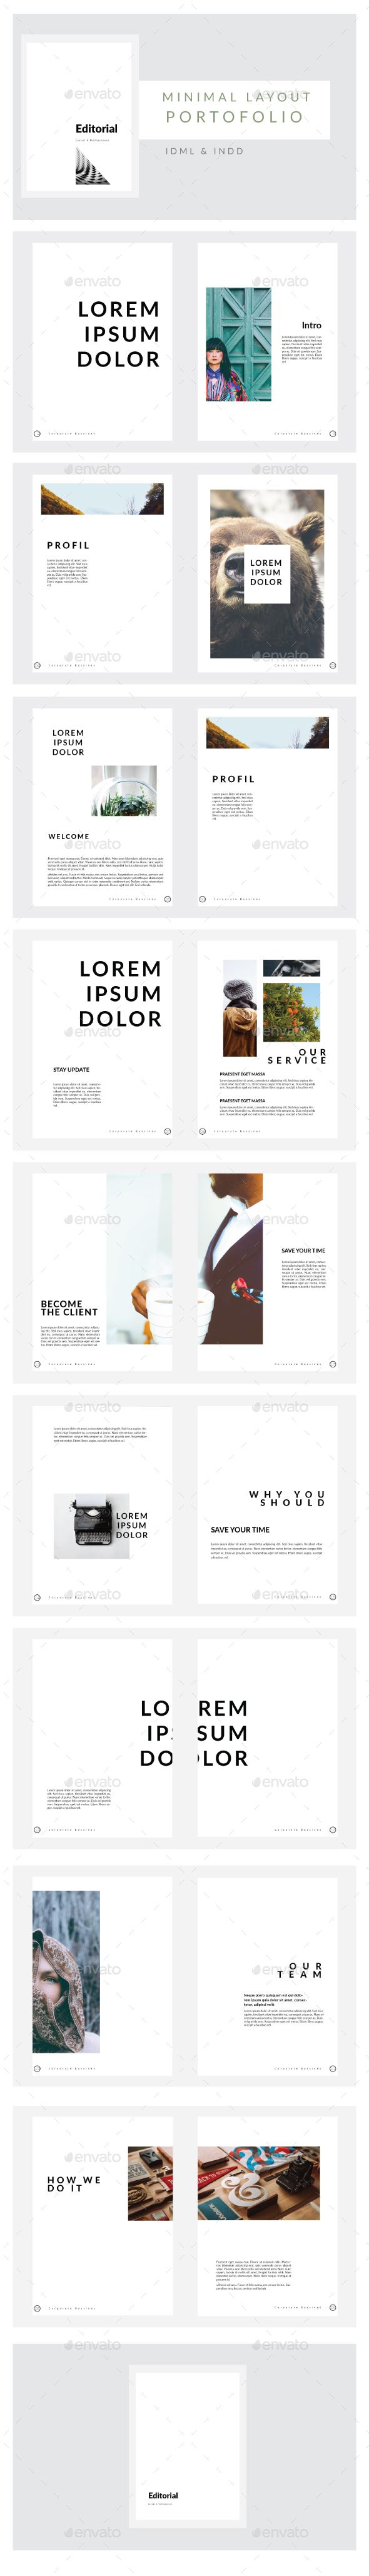 Minimal Portofolio Layout Multipurpose  — InDesign Template #booklet #customizable • Download ➝ https://graphicriver.net/item/minimal-portofolio-layout-multipurpose/15926373?ref=pxcr